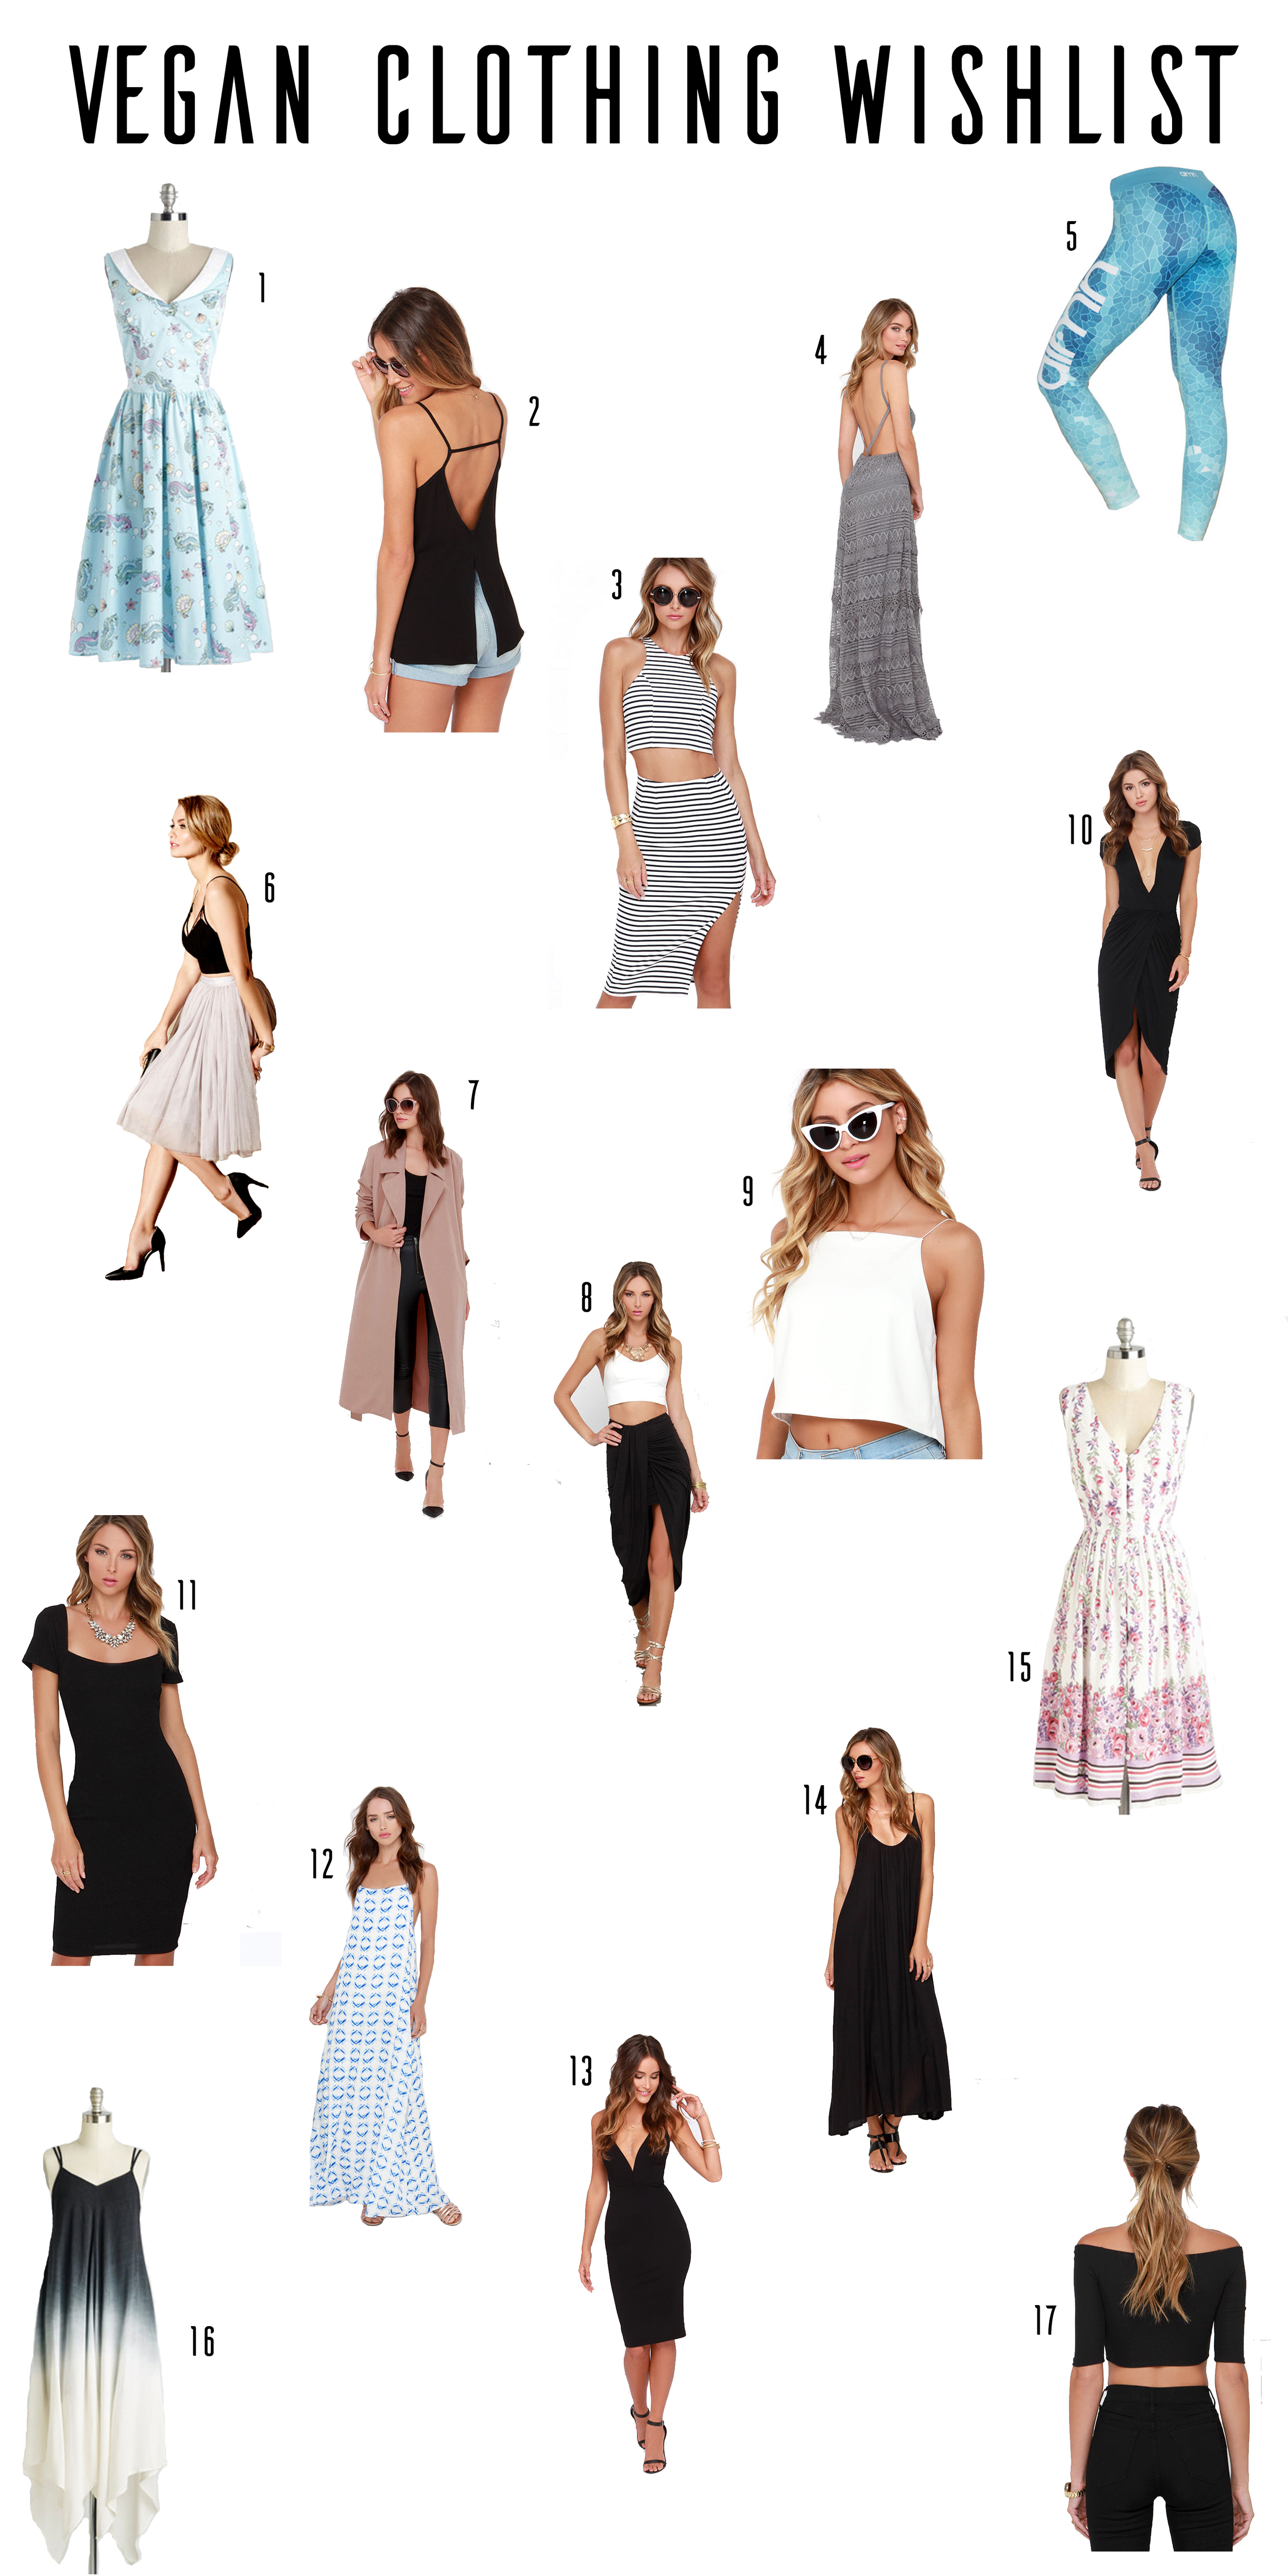 Check out this awesome vegan clothing wishlist from plantbasedbride.com!